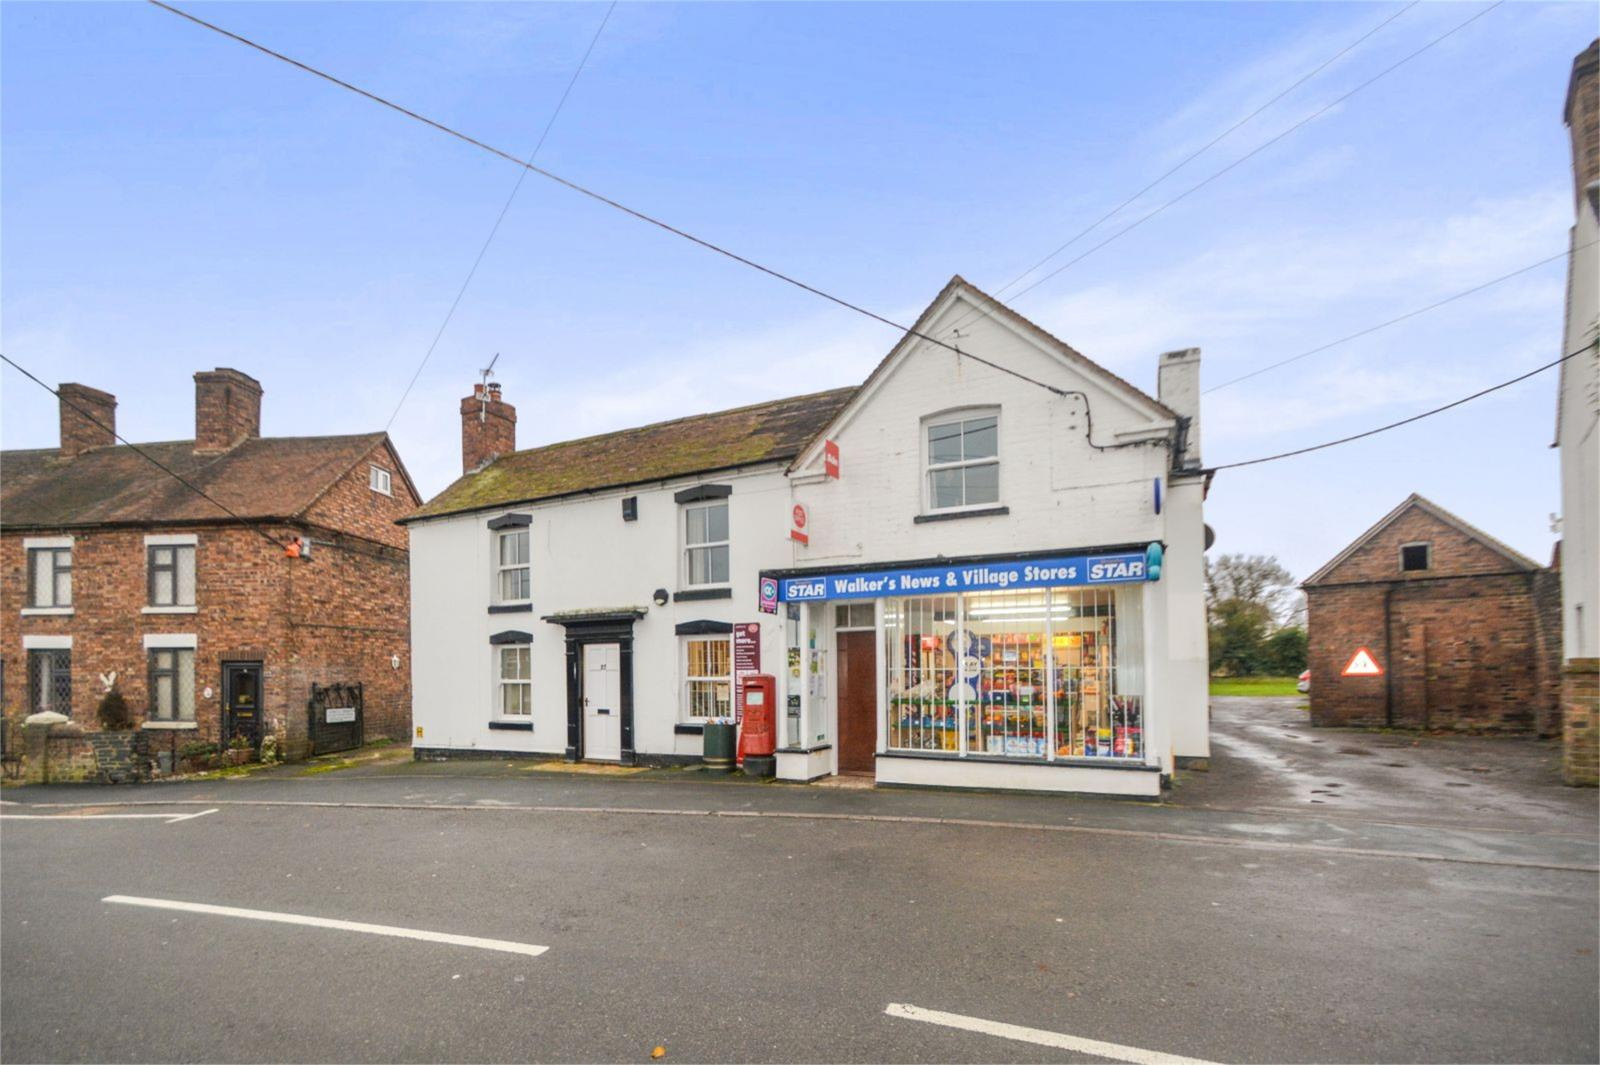 5 Bedrooms Detached House for sale in 27-28 Woodhouse Lane (inc. Newsagents), Horsehay, Telford, Shropshire, TF4